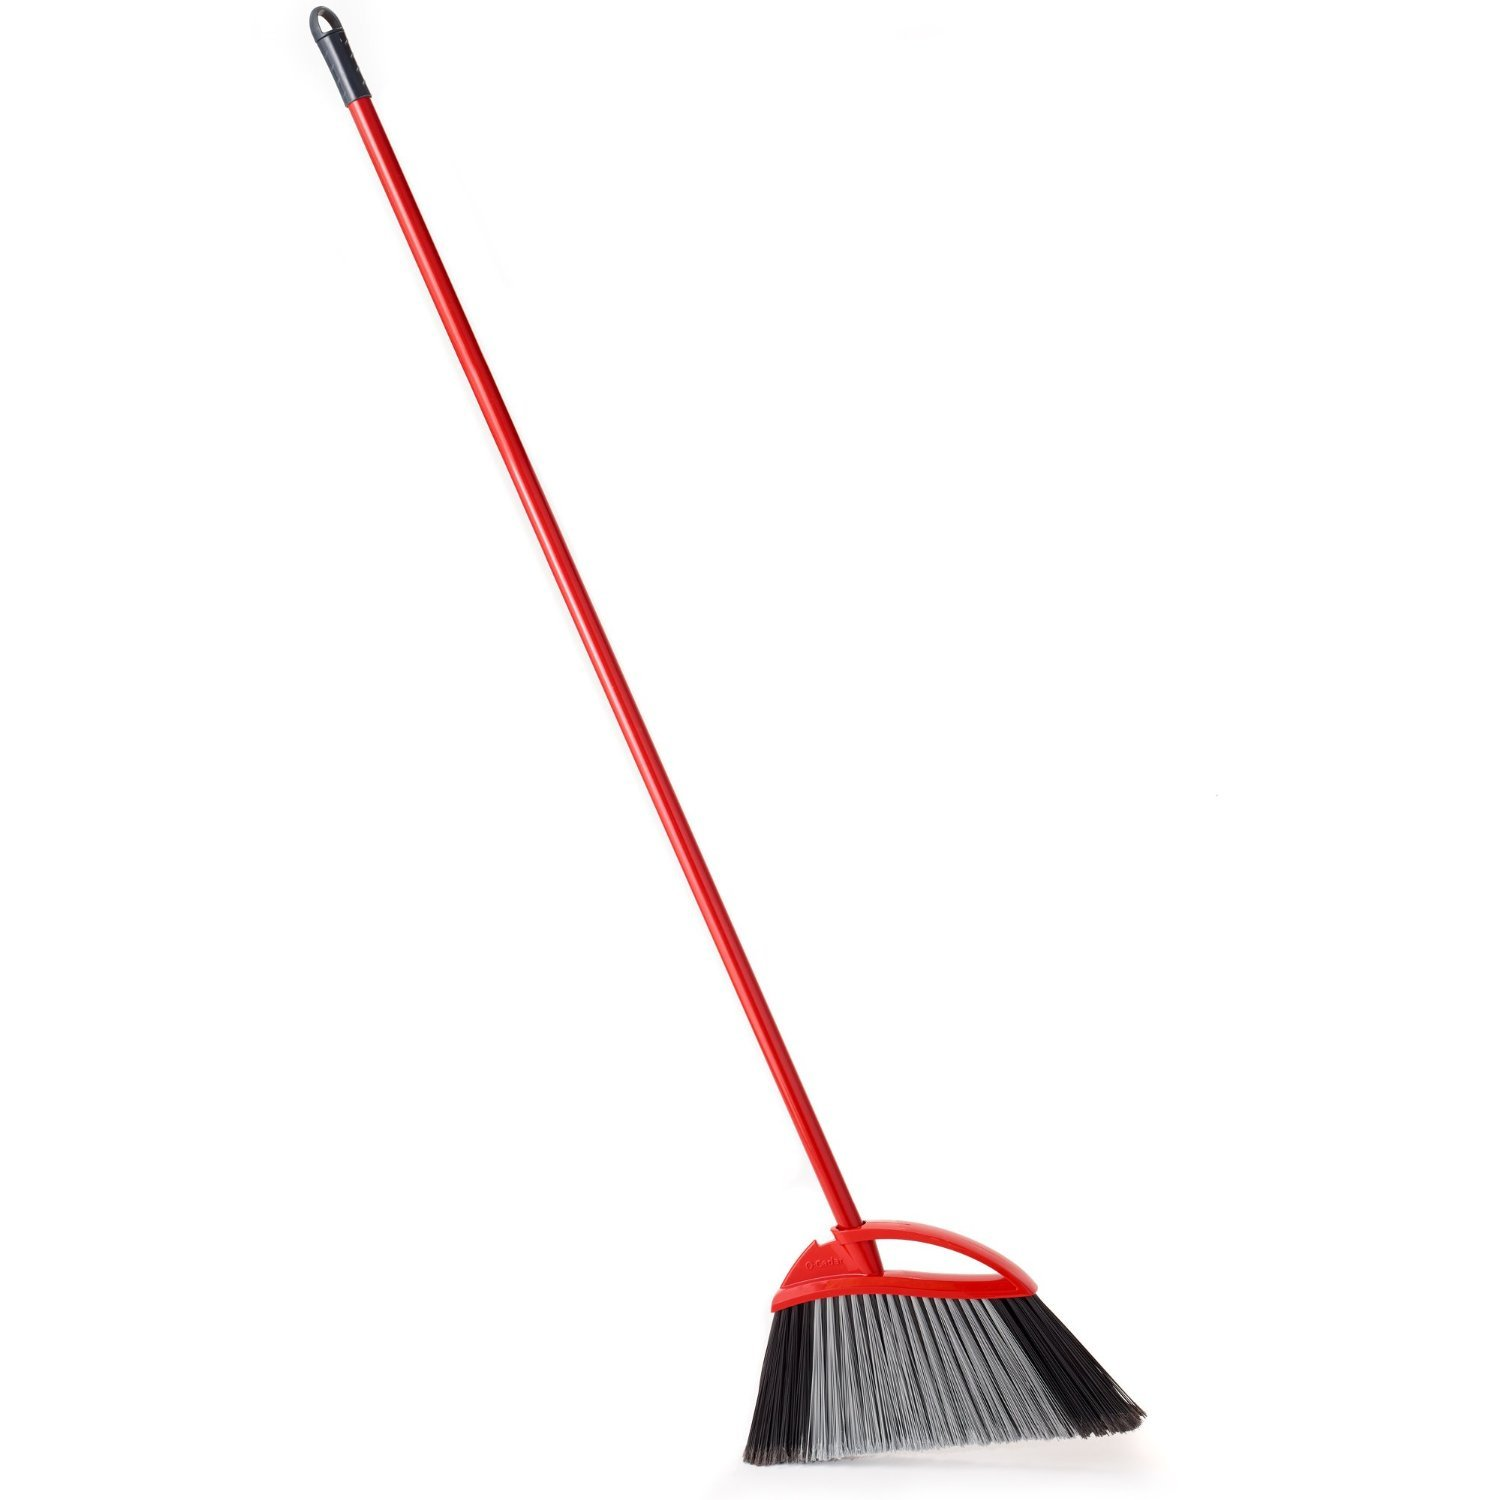 O-Cedar Power Corner Large Angle Broom (Pack of 3) by O-Cedar (Image #2)